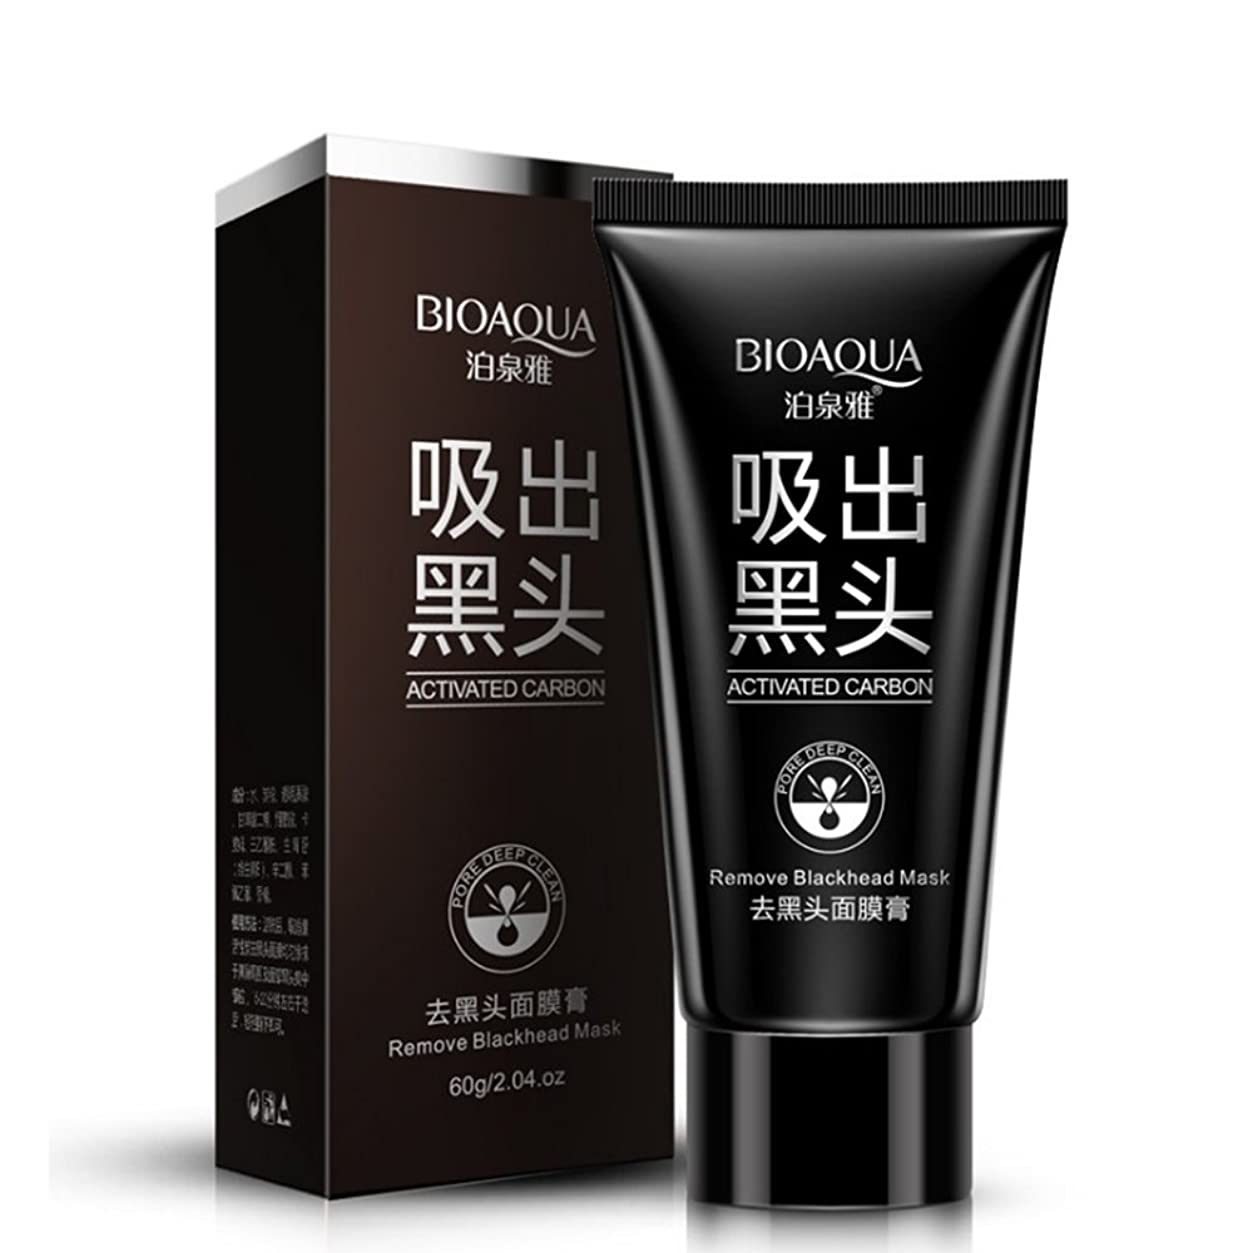 徒歩で近所のグレートオークSuction Black Mask Shrink Black Head Spots Pores,Face Mask Blackhead Removal Blackheads Cosmetics Facials Moisturizing Skin Care.